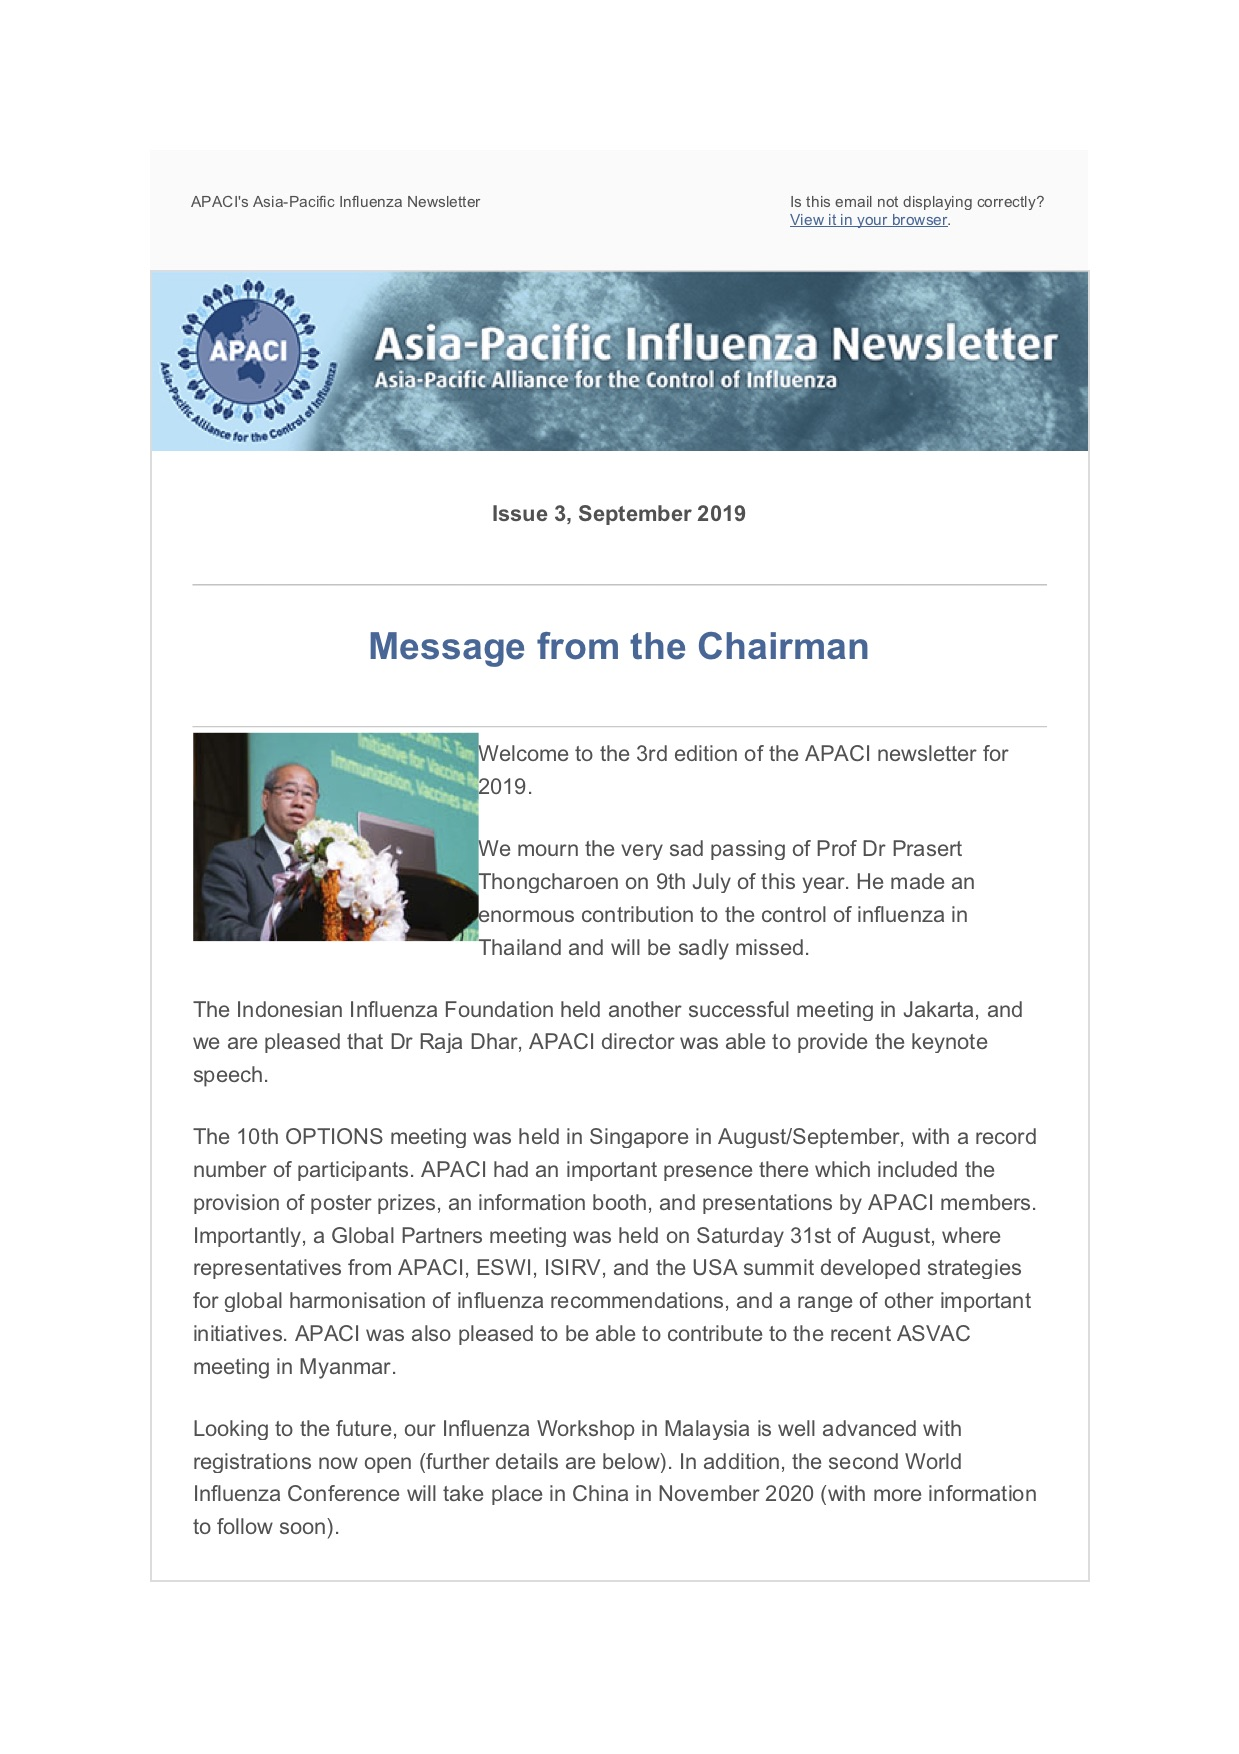 APACI Website Sep 2019 Newsletter